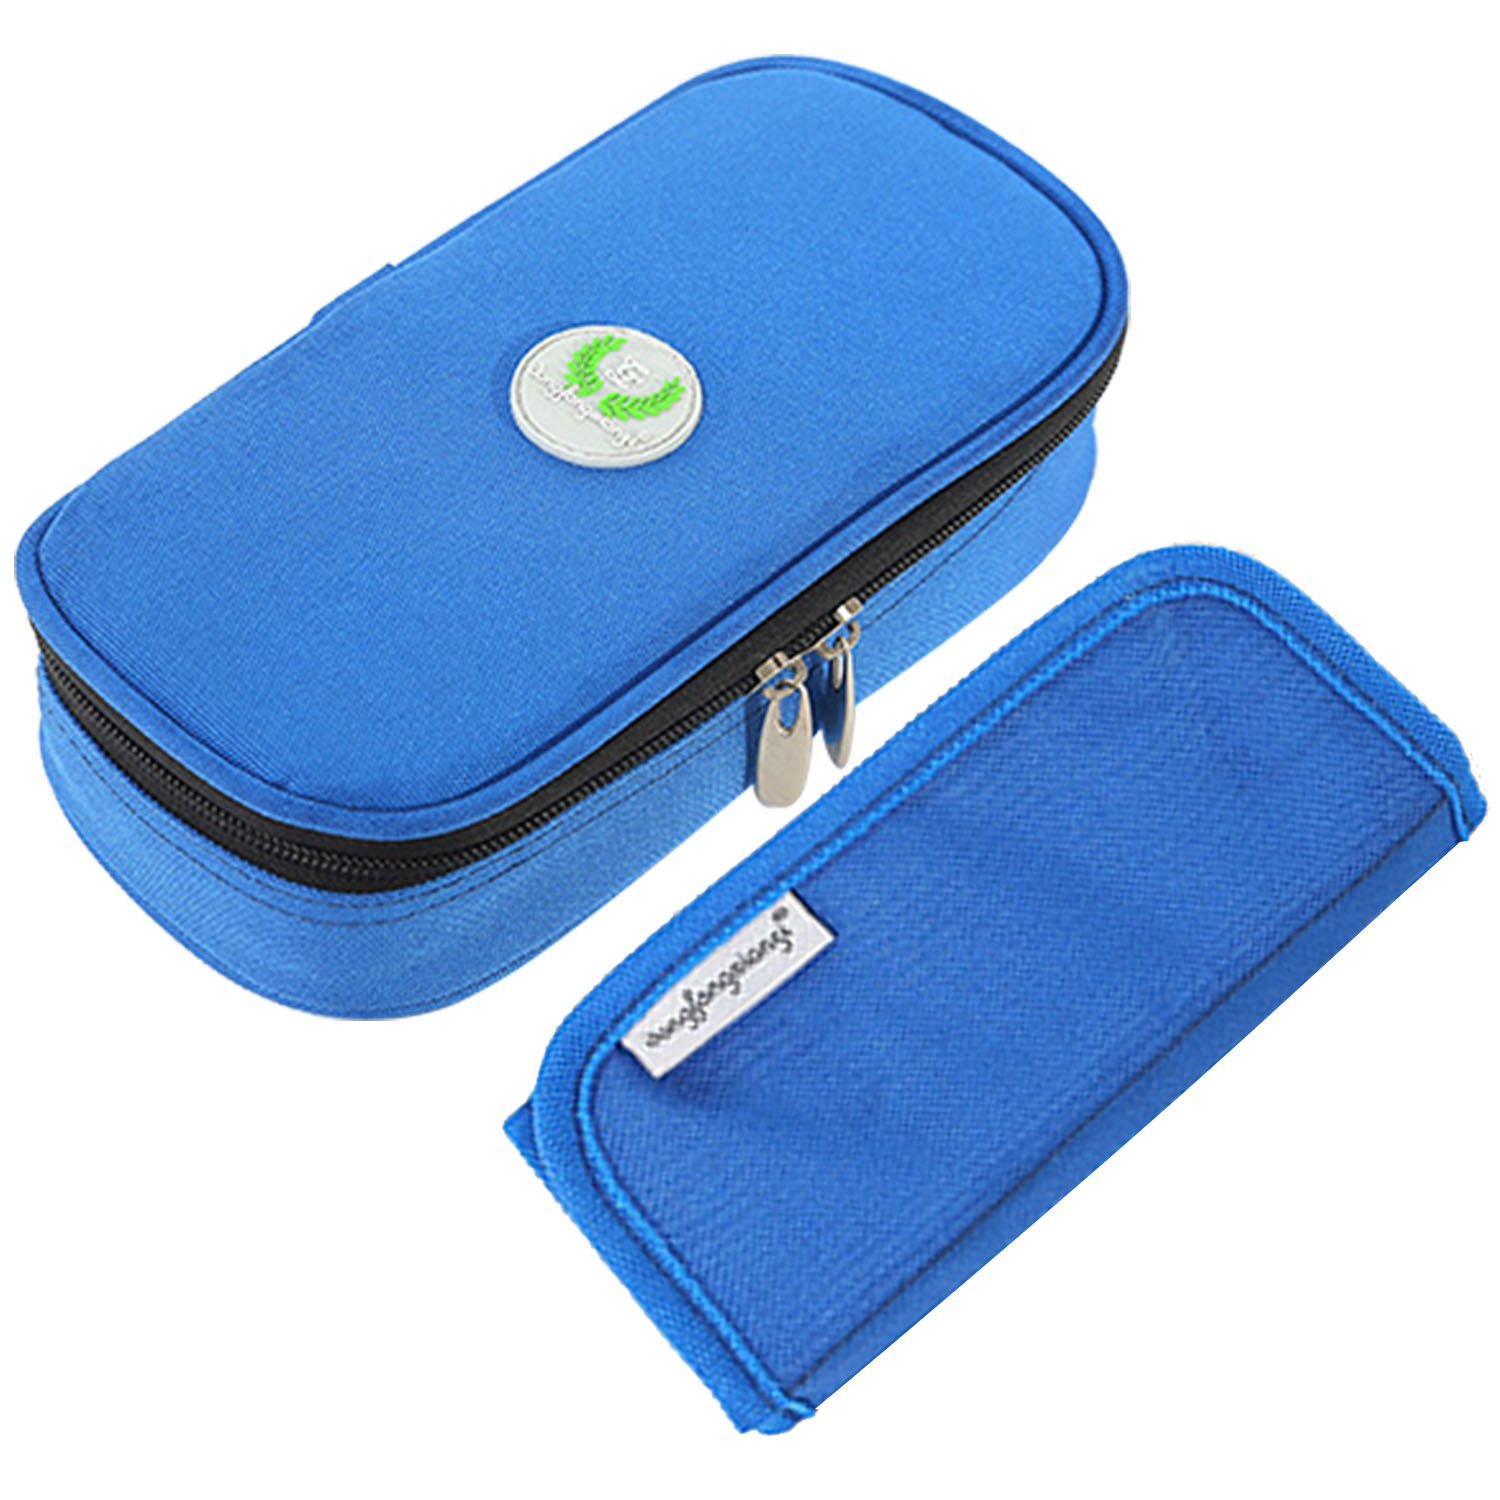 Vococal Diabetic Case, Portable insulin Cooler Bag Medical Travel Camping Organizer for Insulin Pen Syringes Storage Pouch Black